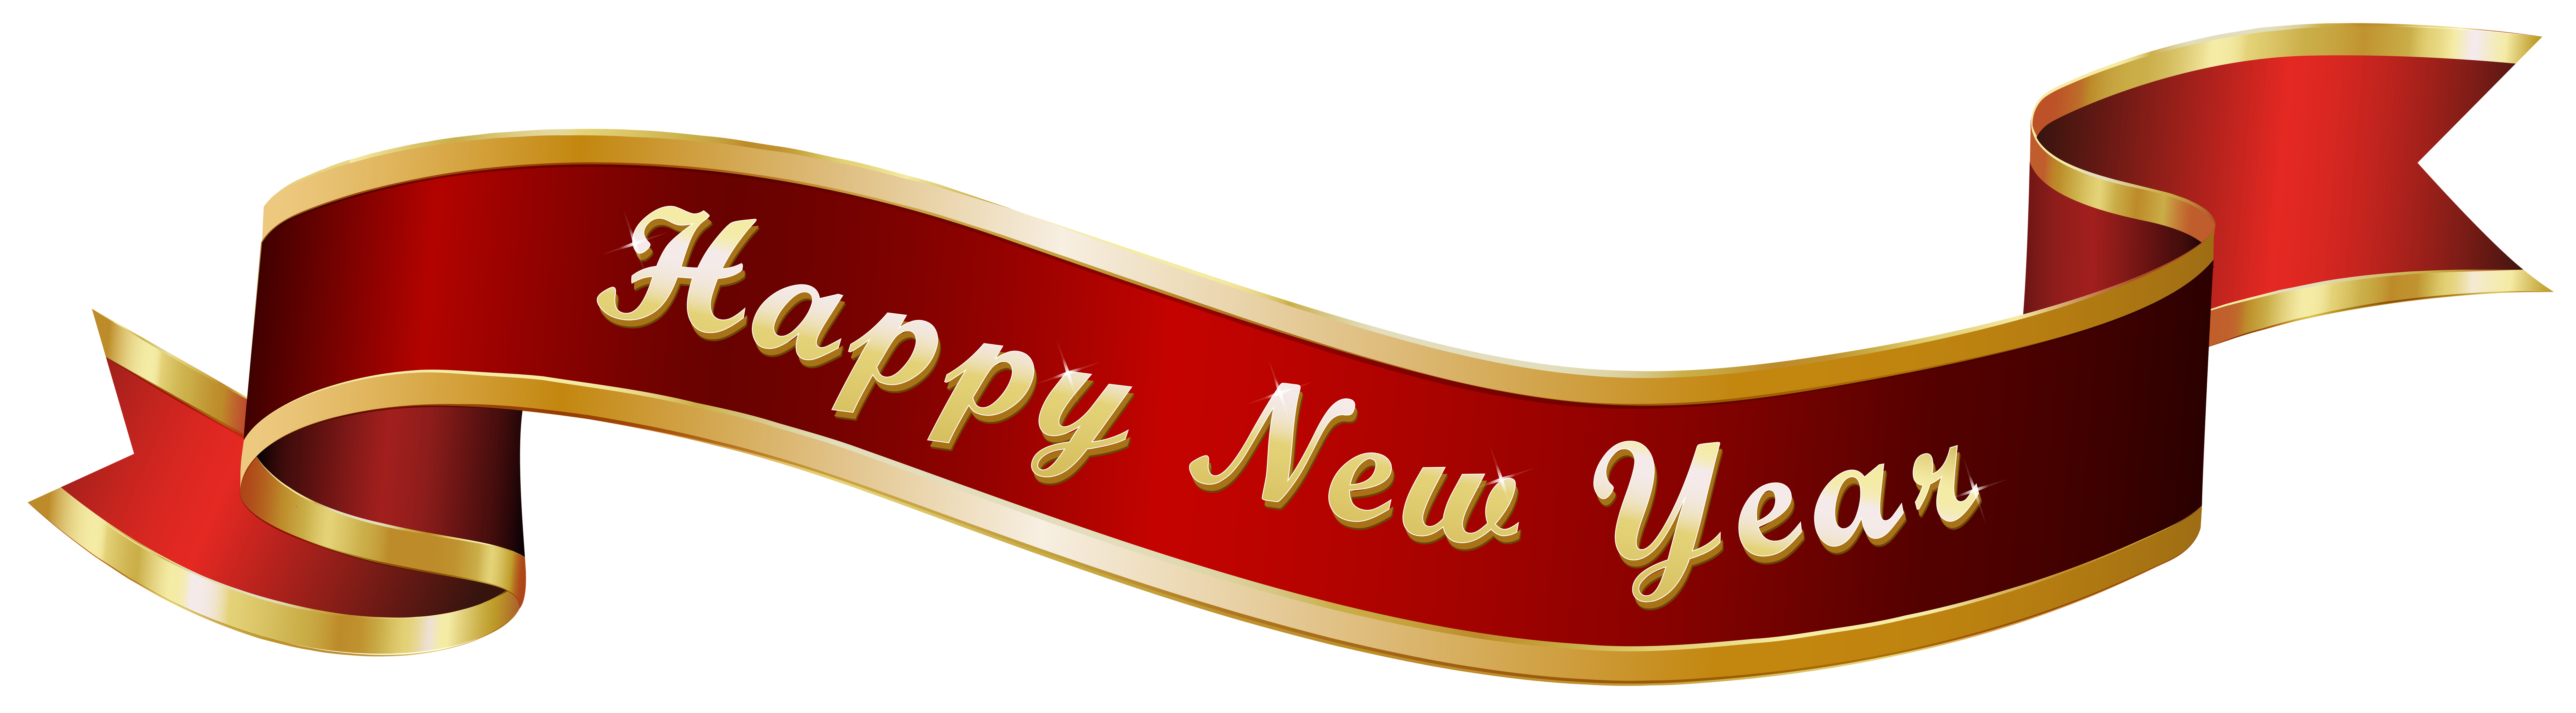 3658 Happy New Year free clipart.